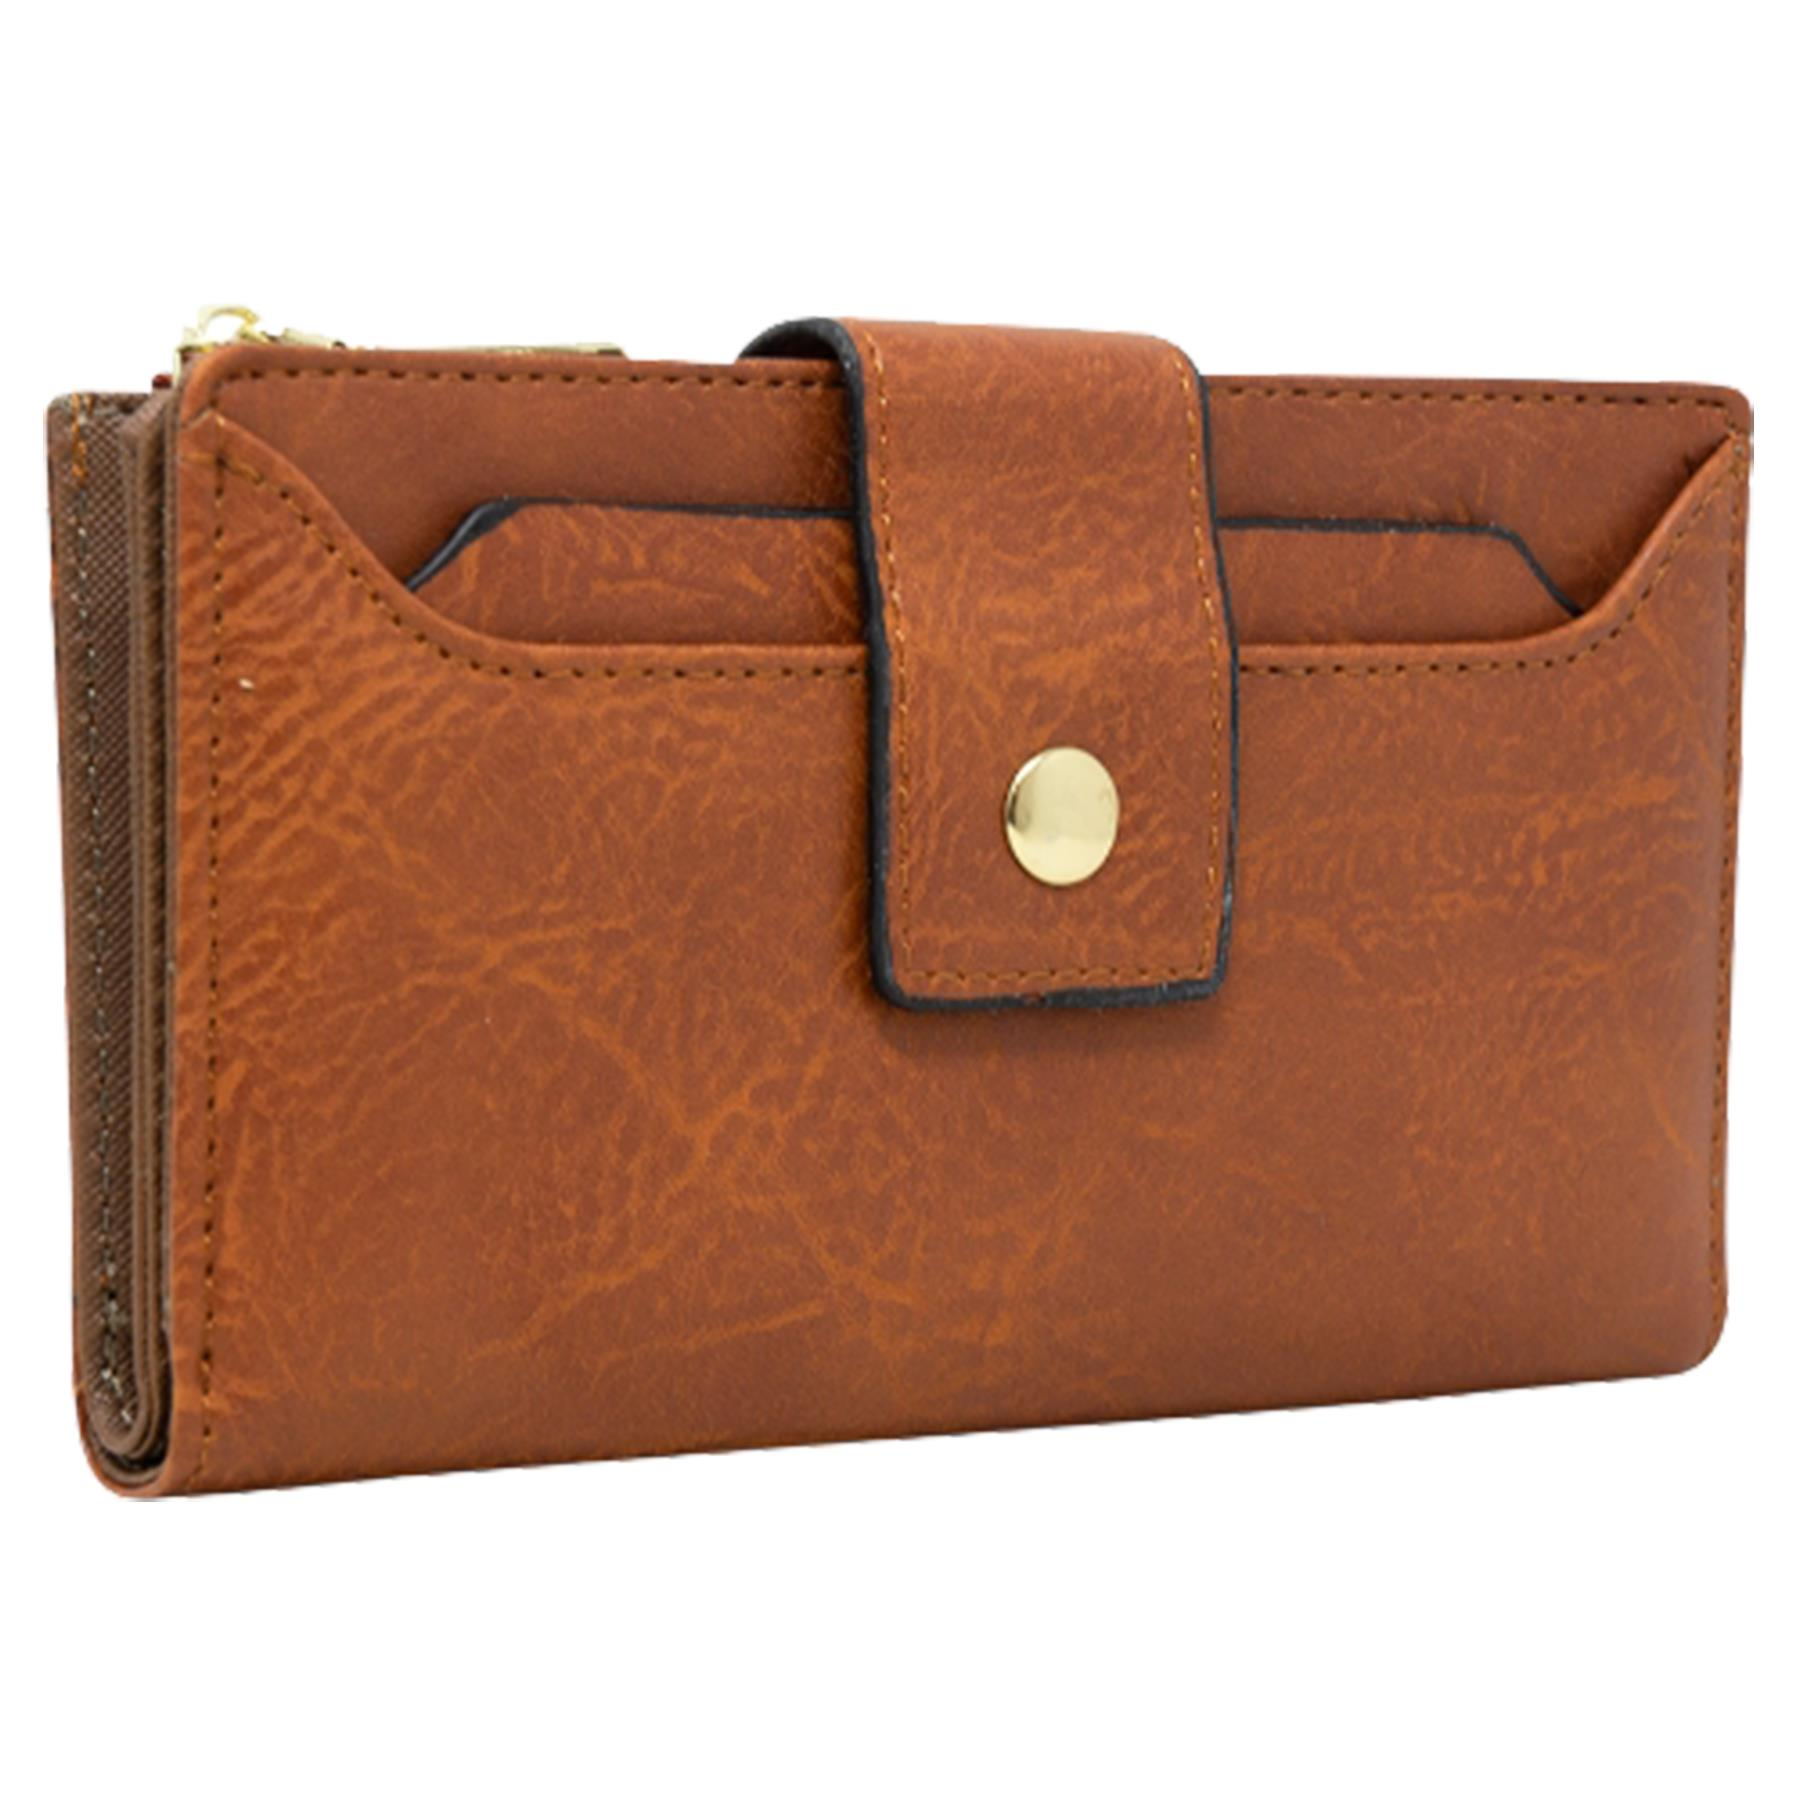 New-Soft-Plain-Synthetic-Leather-Card-Organiser-Ladies-Long-Purse thumbnail 11